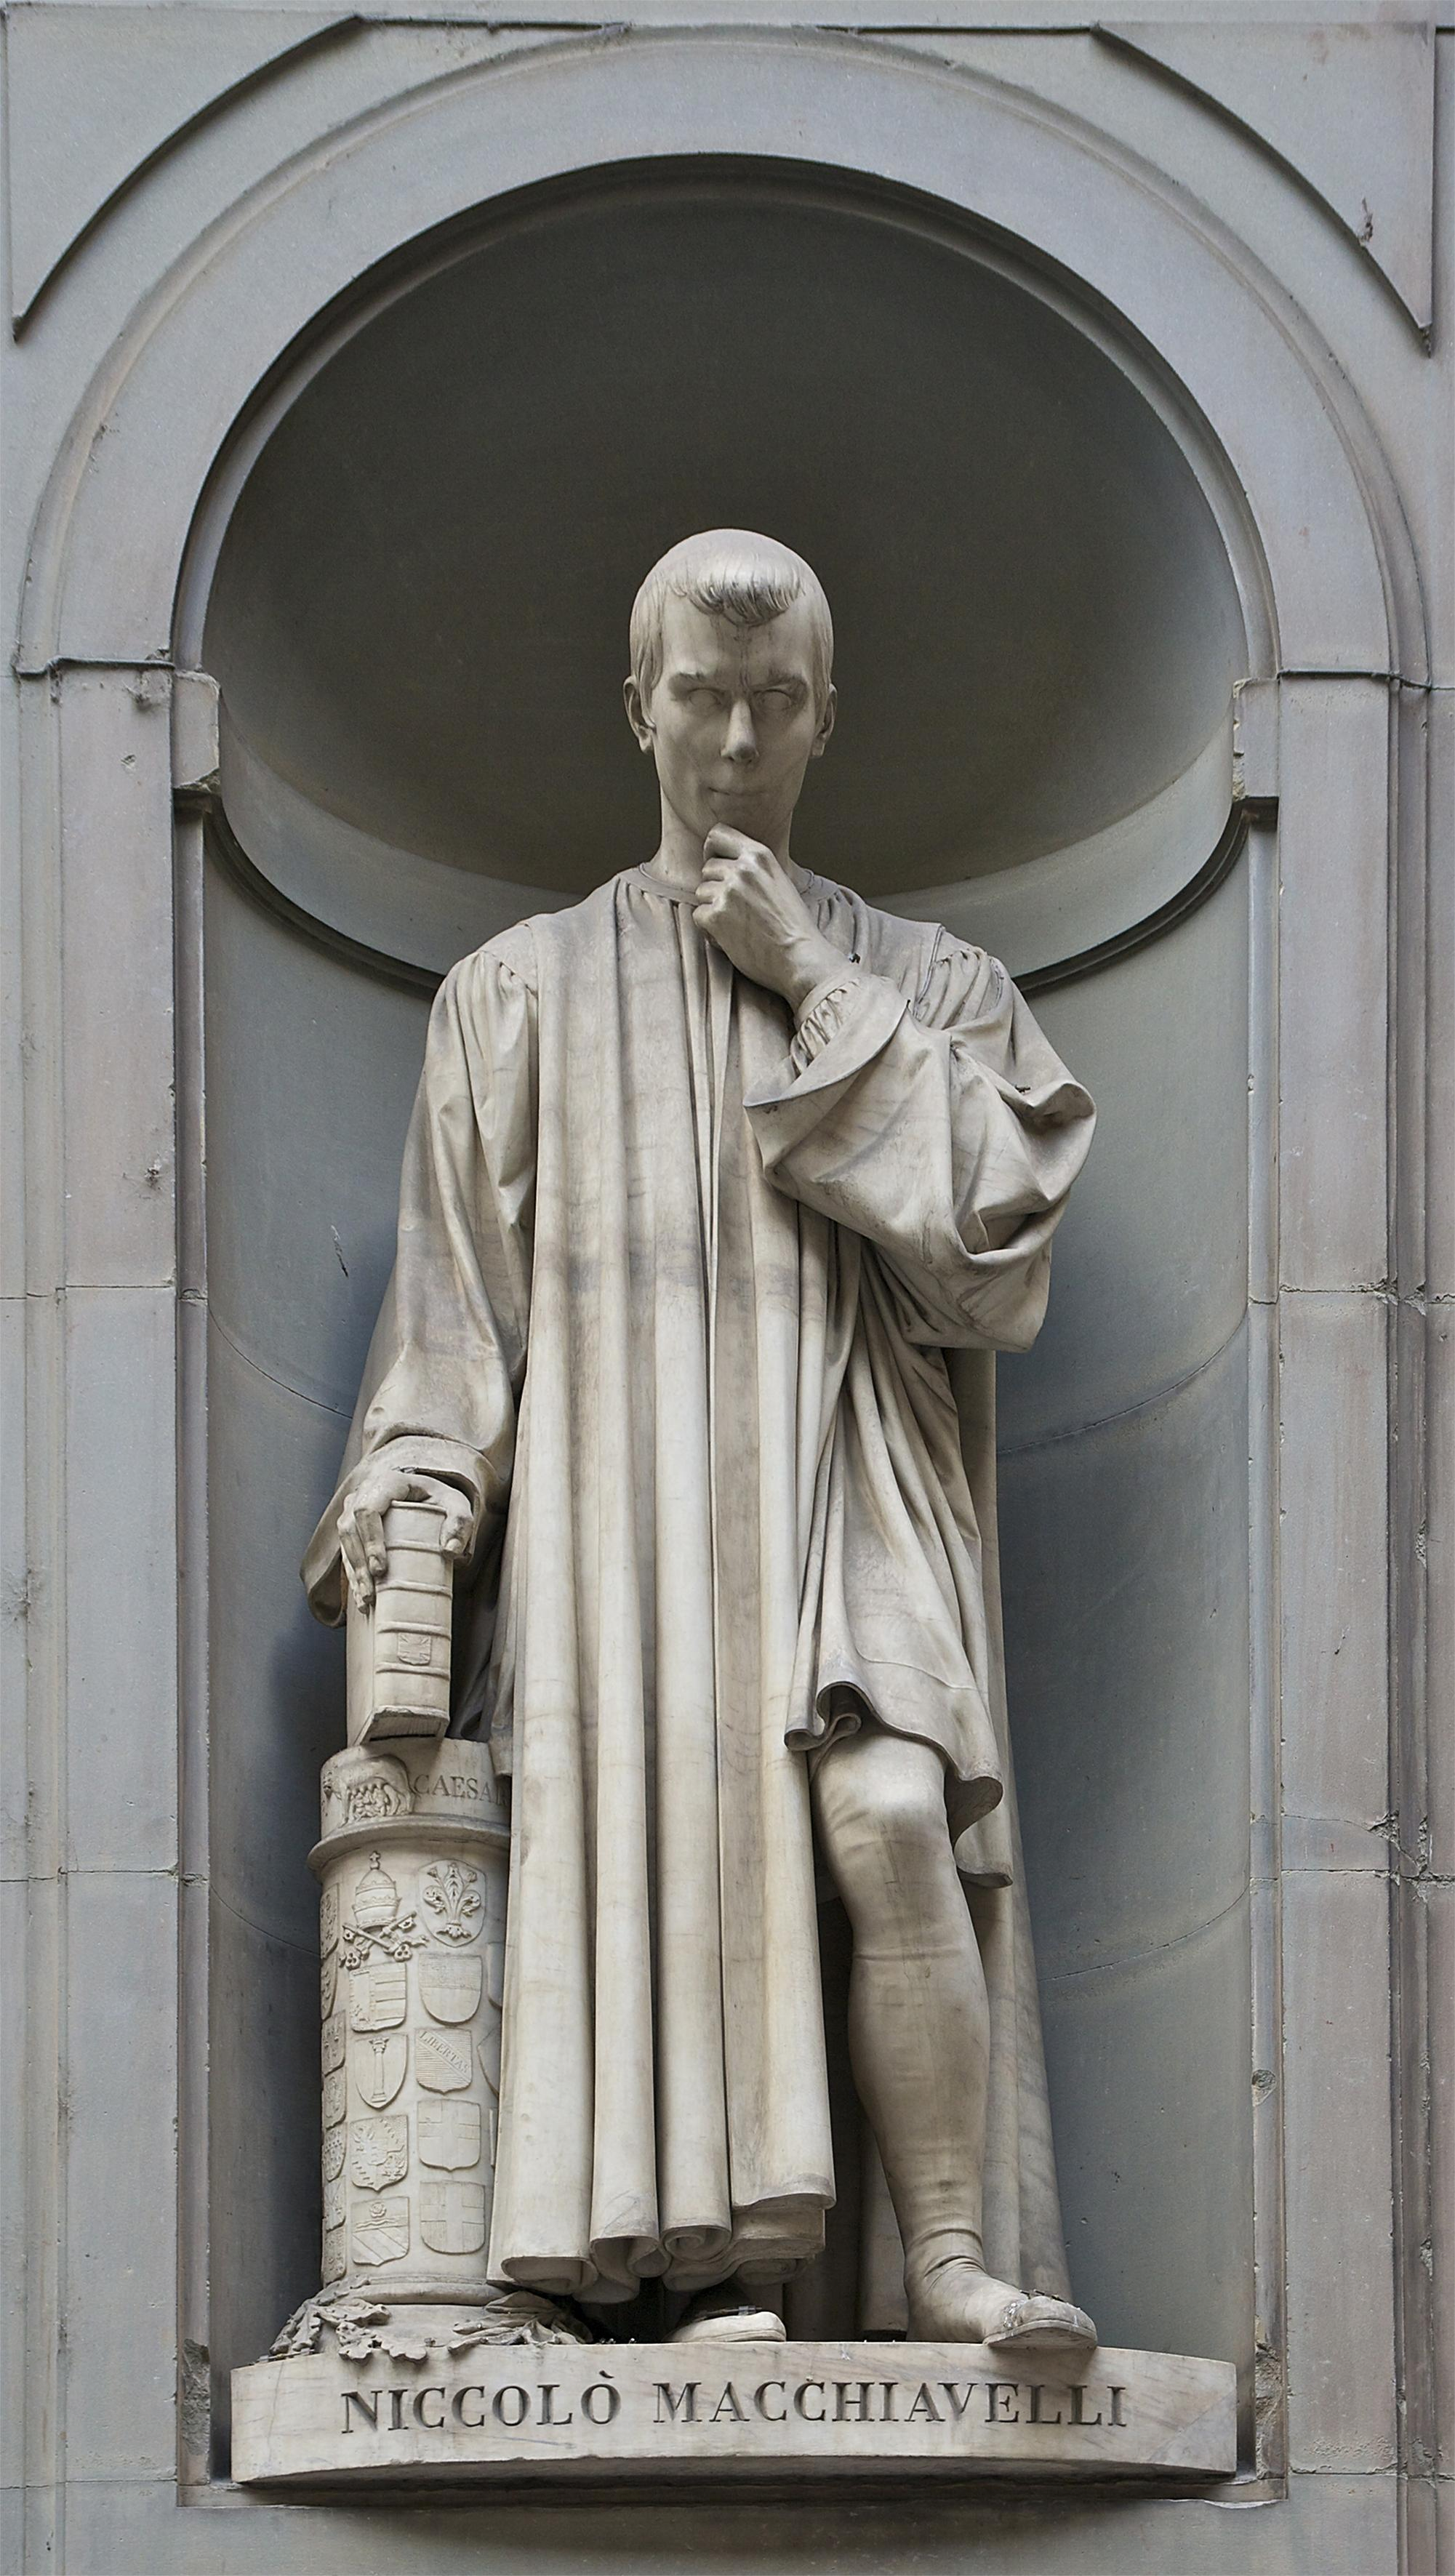 machiavelli as a humanist A short niccolò machiavelli biography describes niccolò machiavelli's life, times, and work also explains the historical and literary context that influenced the prince.